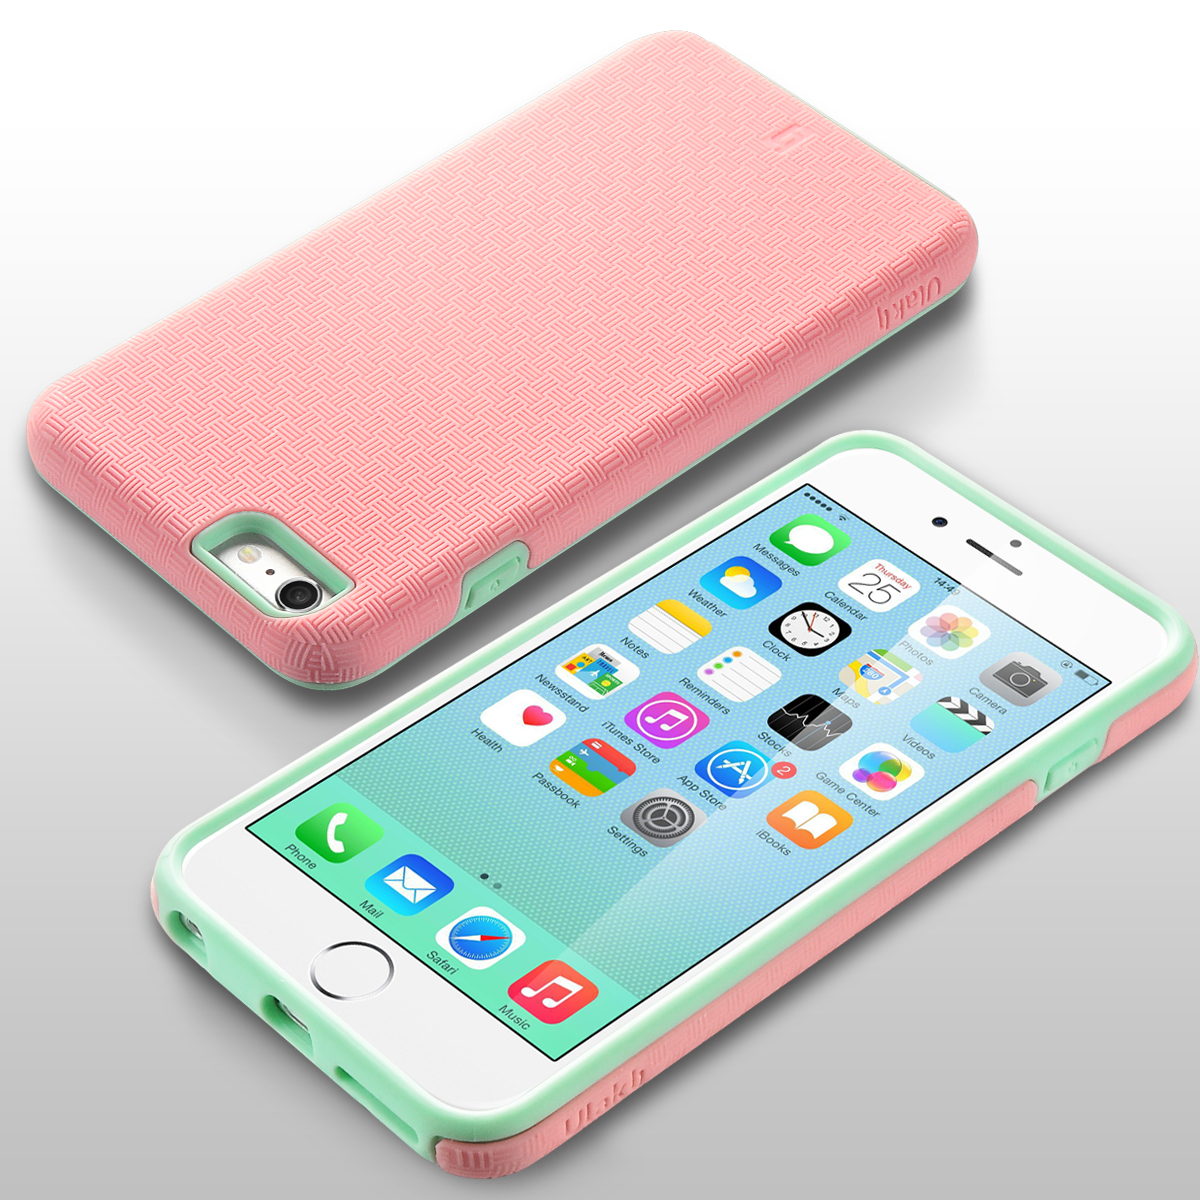 iPhone 6s Plus Case, iPhone 6 Plus Case, ULAK Slim Protective Shock Absorbent TPU Bumper Hard Cover for Apple iPhone 6 Plus /6s Plus 5.5'',Mint Green ...